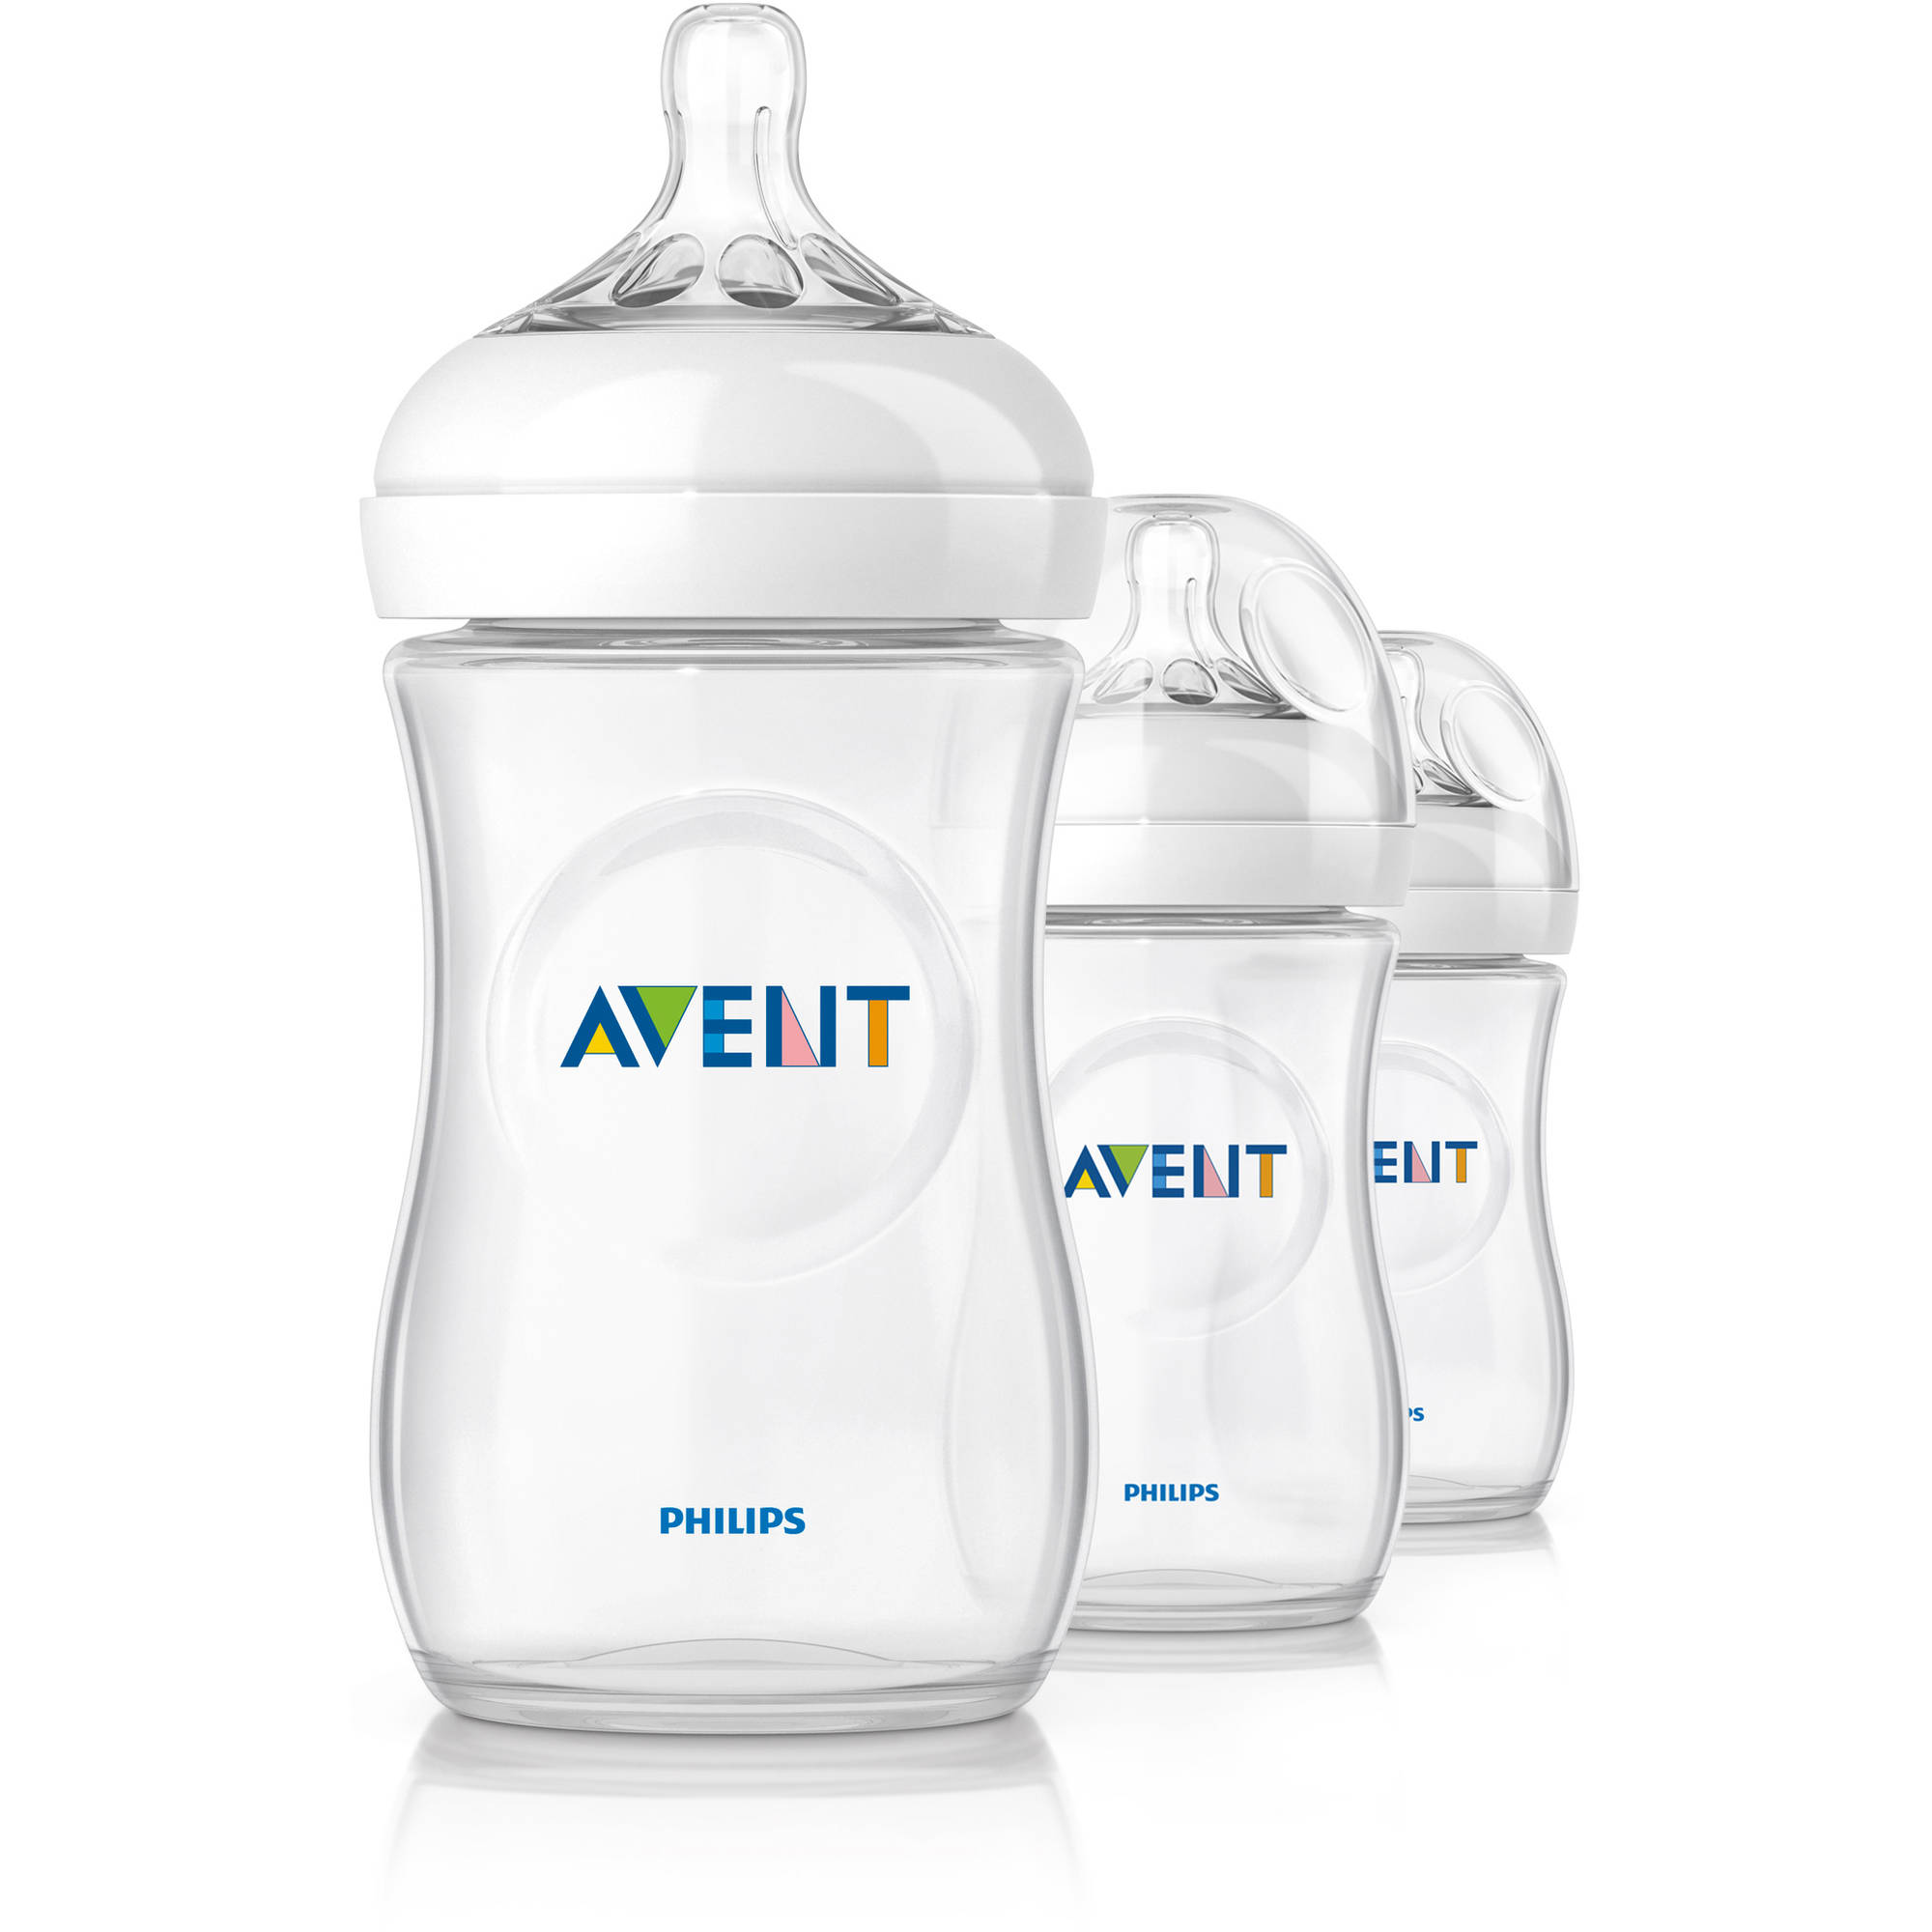 Philips Avent BPA Free Natural Baby Bottles, 9 Ounce, 3 Pack